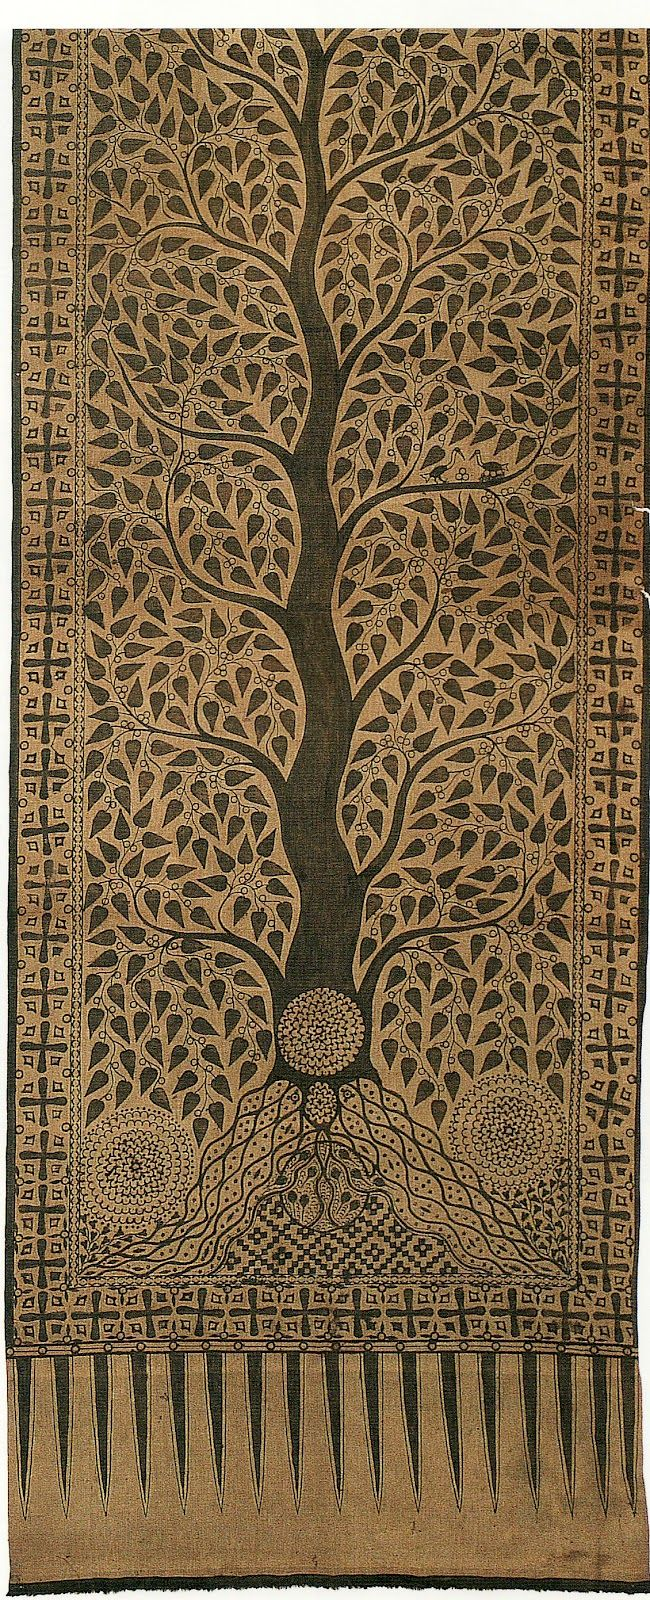 print on textile. Indonesian tree of life